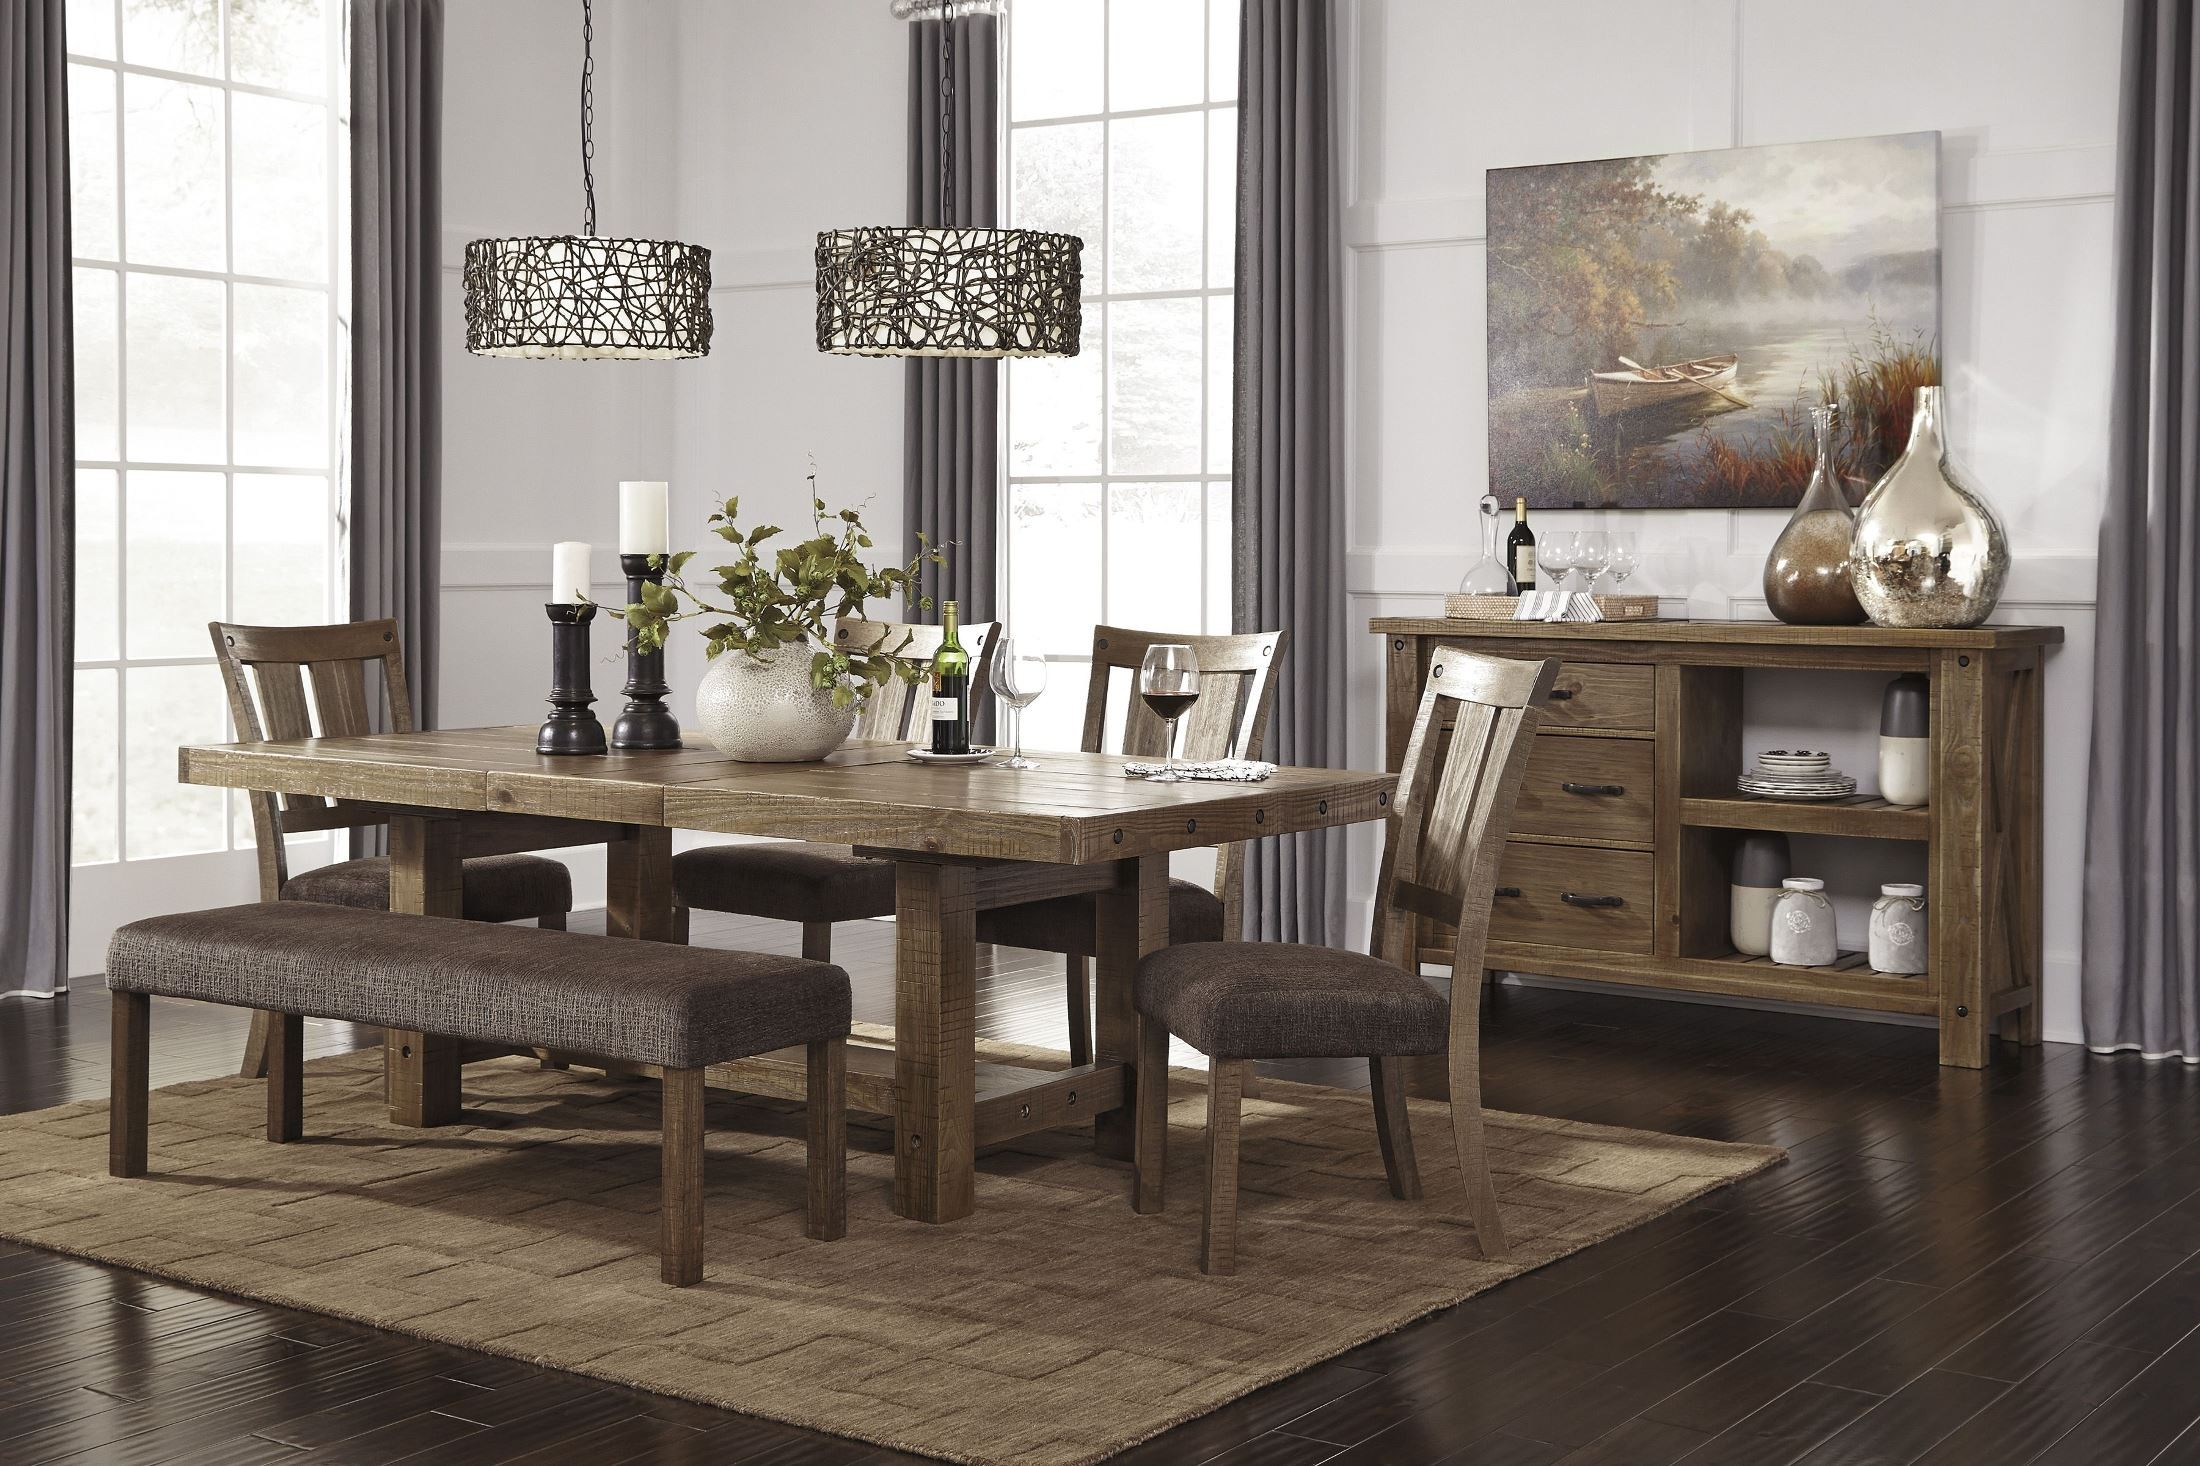 Tamilo Gray Brown Rectangular Extendable Dining Table From Ashley